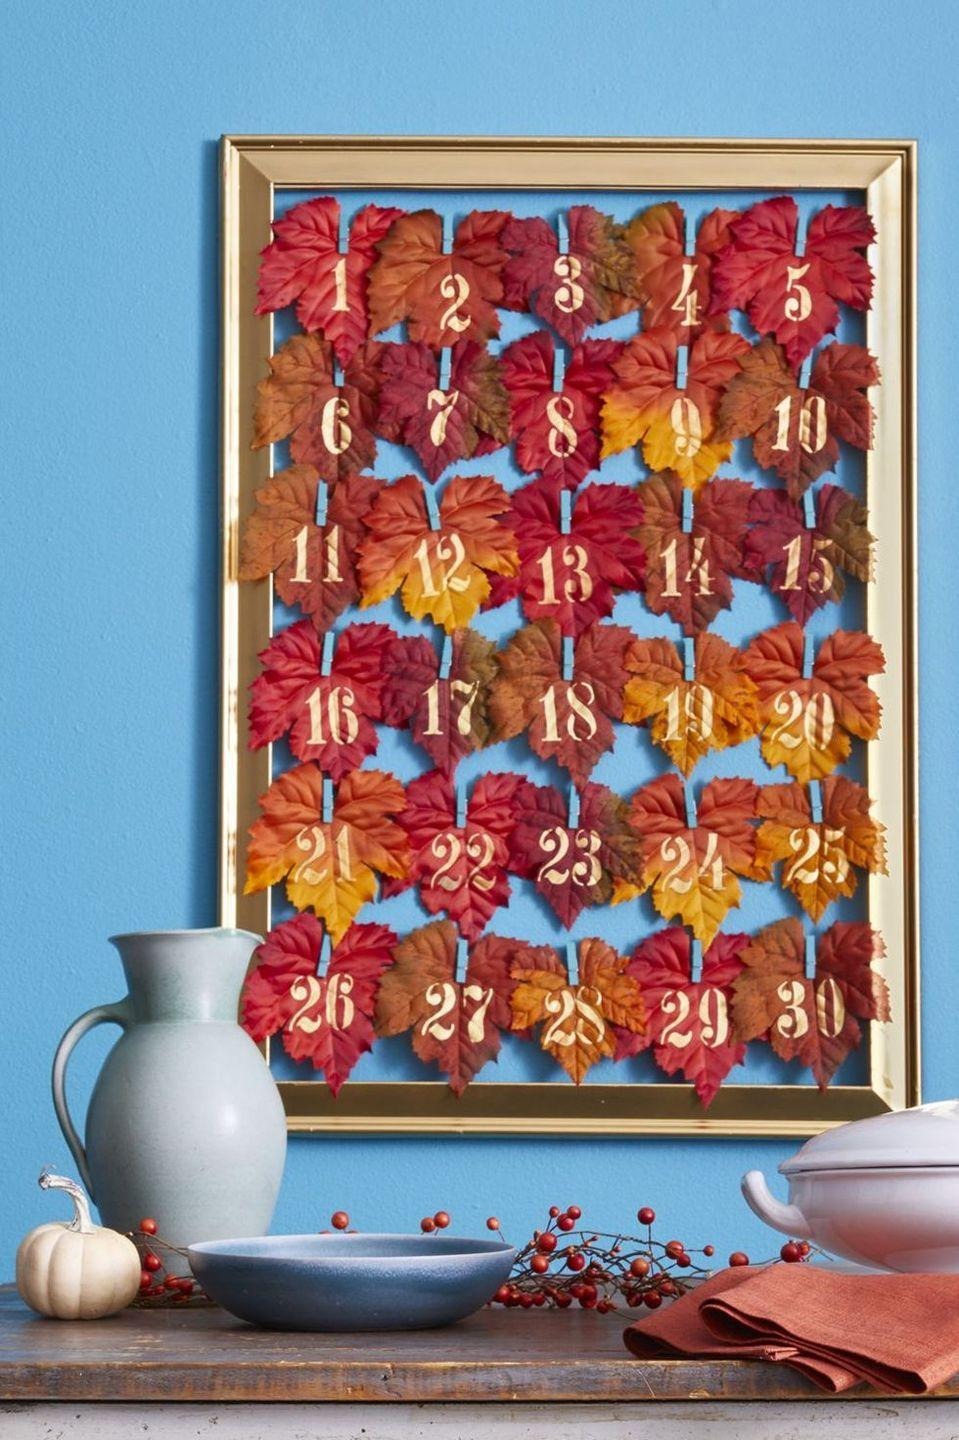 "<p>Long before Christmas, there's another excuse to whip out an ""advent calendar."" Clothespins, faux leaves, and notes of gratitude (penned by your kids!) make it easy. </p><p><strong>To Make: </strong>Outfit an empty frame with horizontal lengths of twine or ribbon and clip on numbered leaves (we used a gold paint marker and stencils). Each day of November, write something you're grateful for on a paper tag and put it behind the leaf that displays that date.</p><p><a class=""link rapid-noclick-resp"" href=""https://www.amazon.com/HZOnline-Artificial-Scrapbooking-Photography-Decorations/dp/B07FMH6W59?tag=syn-yahoo-20&ascsubtag=%5Bartid%7C10050.g.22626432%5Bsrc%7Cyahoo-us"" rel=""nofollow noopener"" target=""_blank"" data-ylk=""slk:SHOP FAUX LEAVES"">SHOP FAUX LEAVES</a></p>"